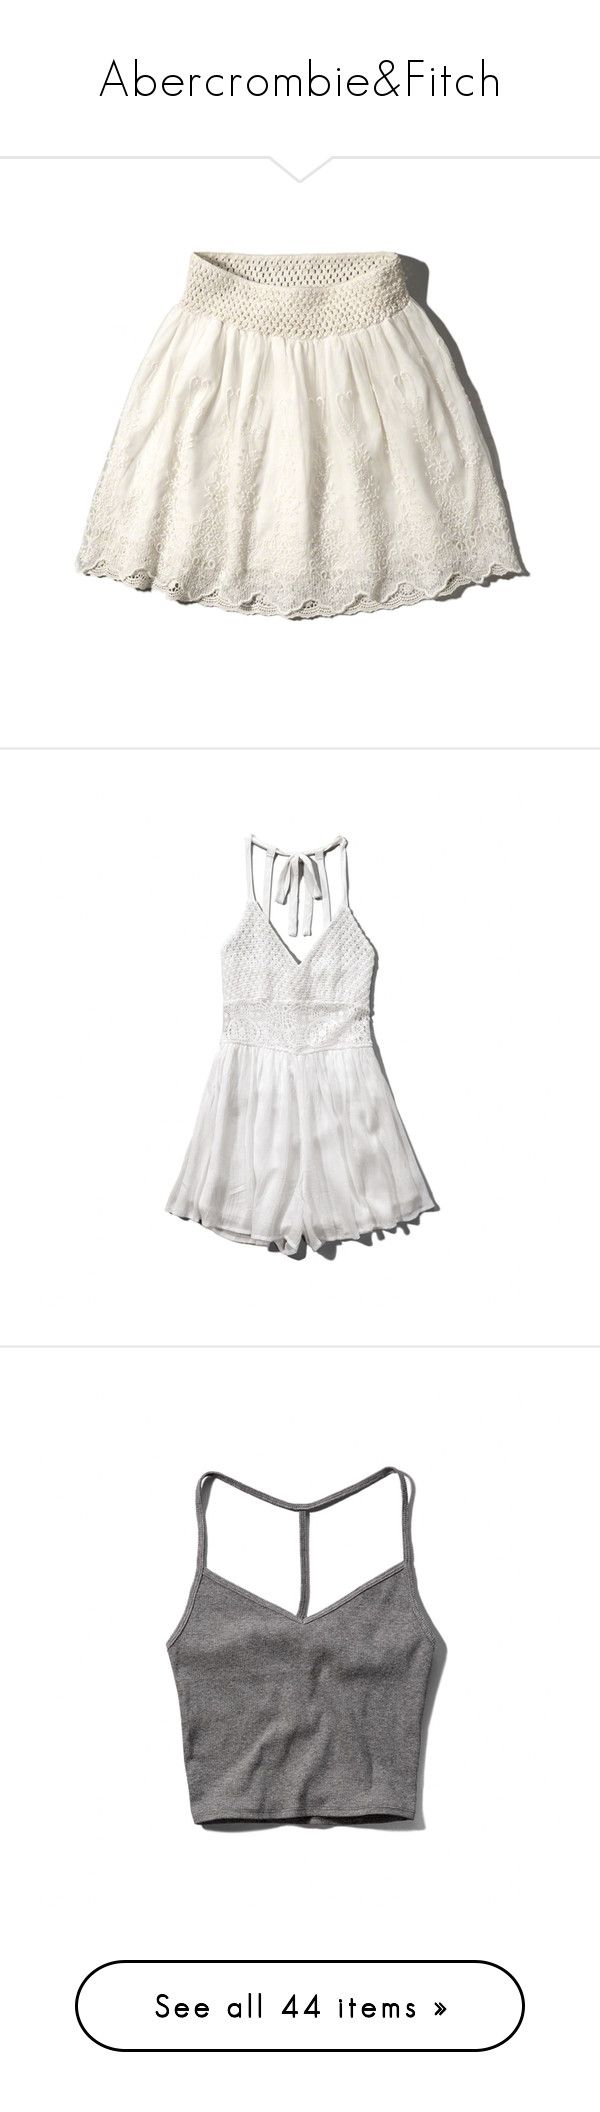 """Abercrombie&Fitch"" by anna-laboa ❤ liked on Polyvore featuring logo, skirts, cream, smocked skirt, white circle skirt, white skater skirt, circle skirts, lacy skirt, jumpsuits and rompers"